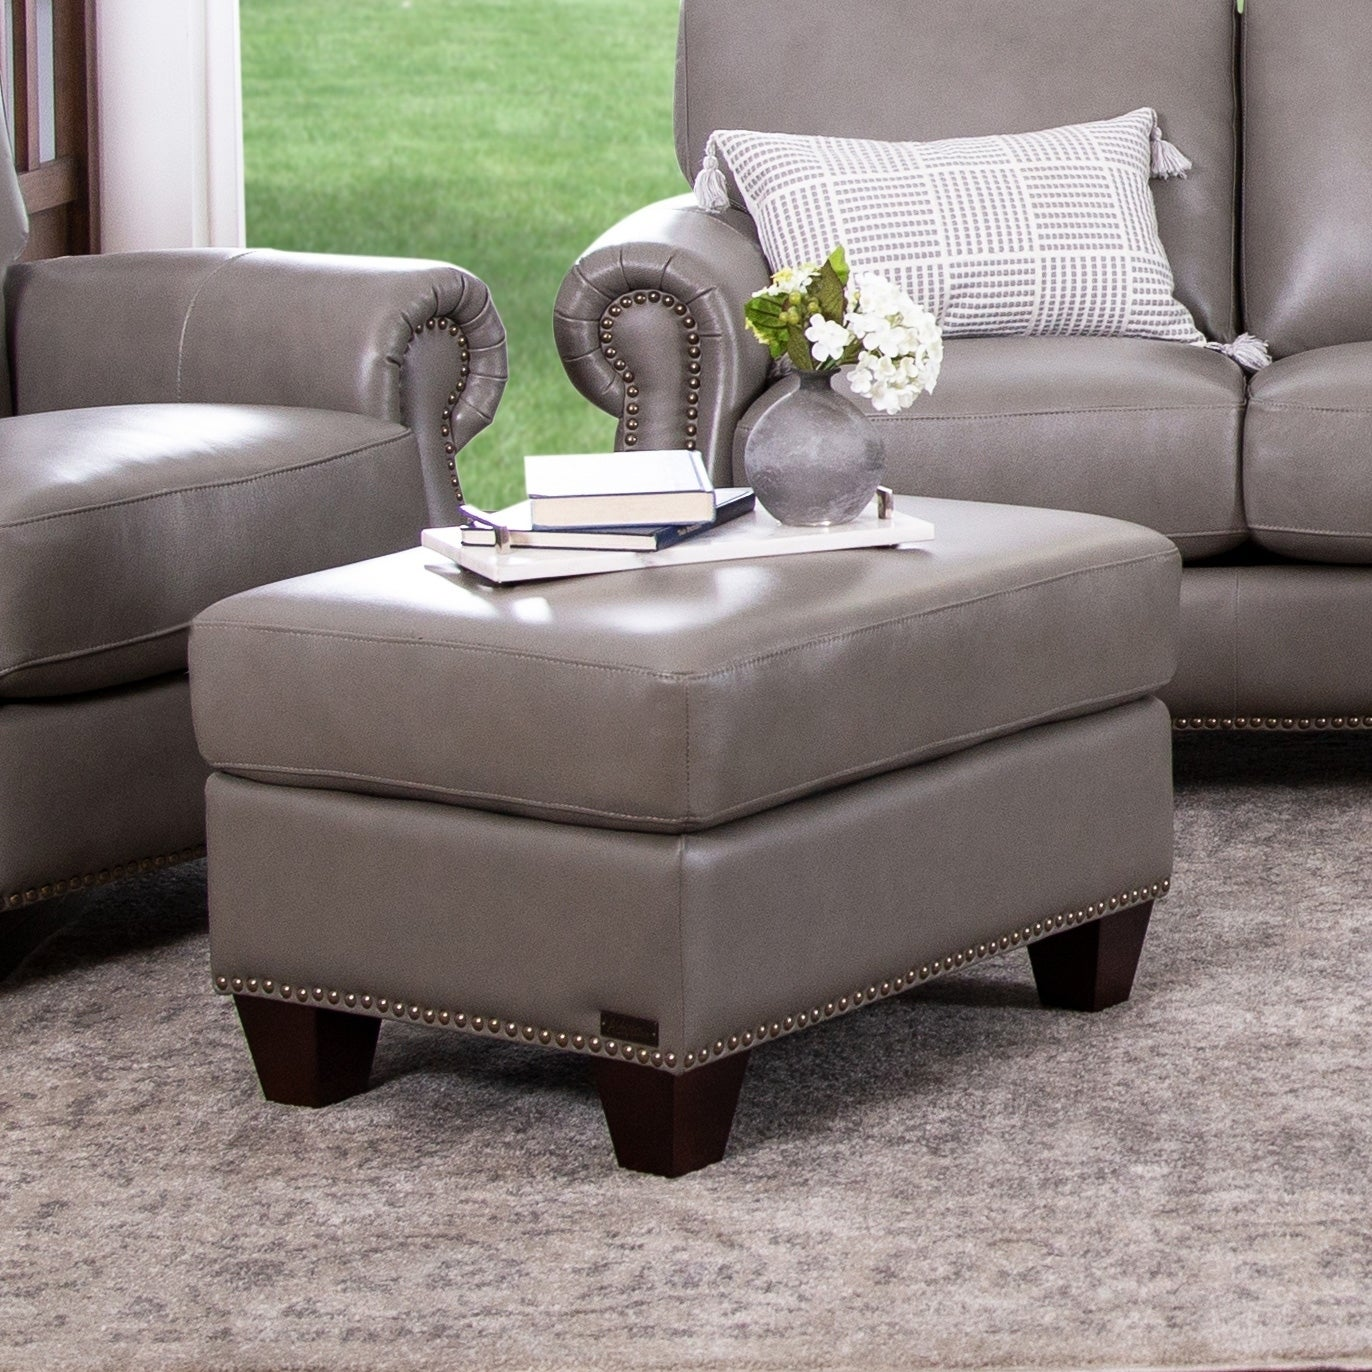 Shop abbyson landon grey top grain leather ottoman on sale free shipping today overstock com 9772548